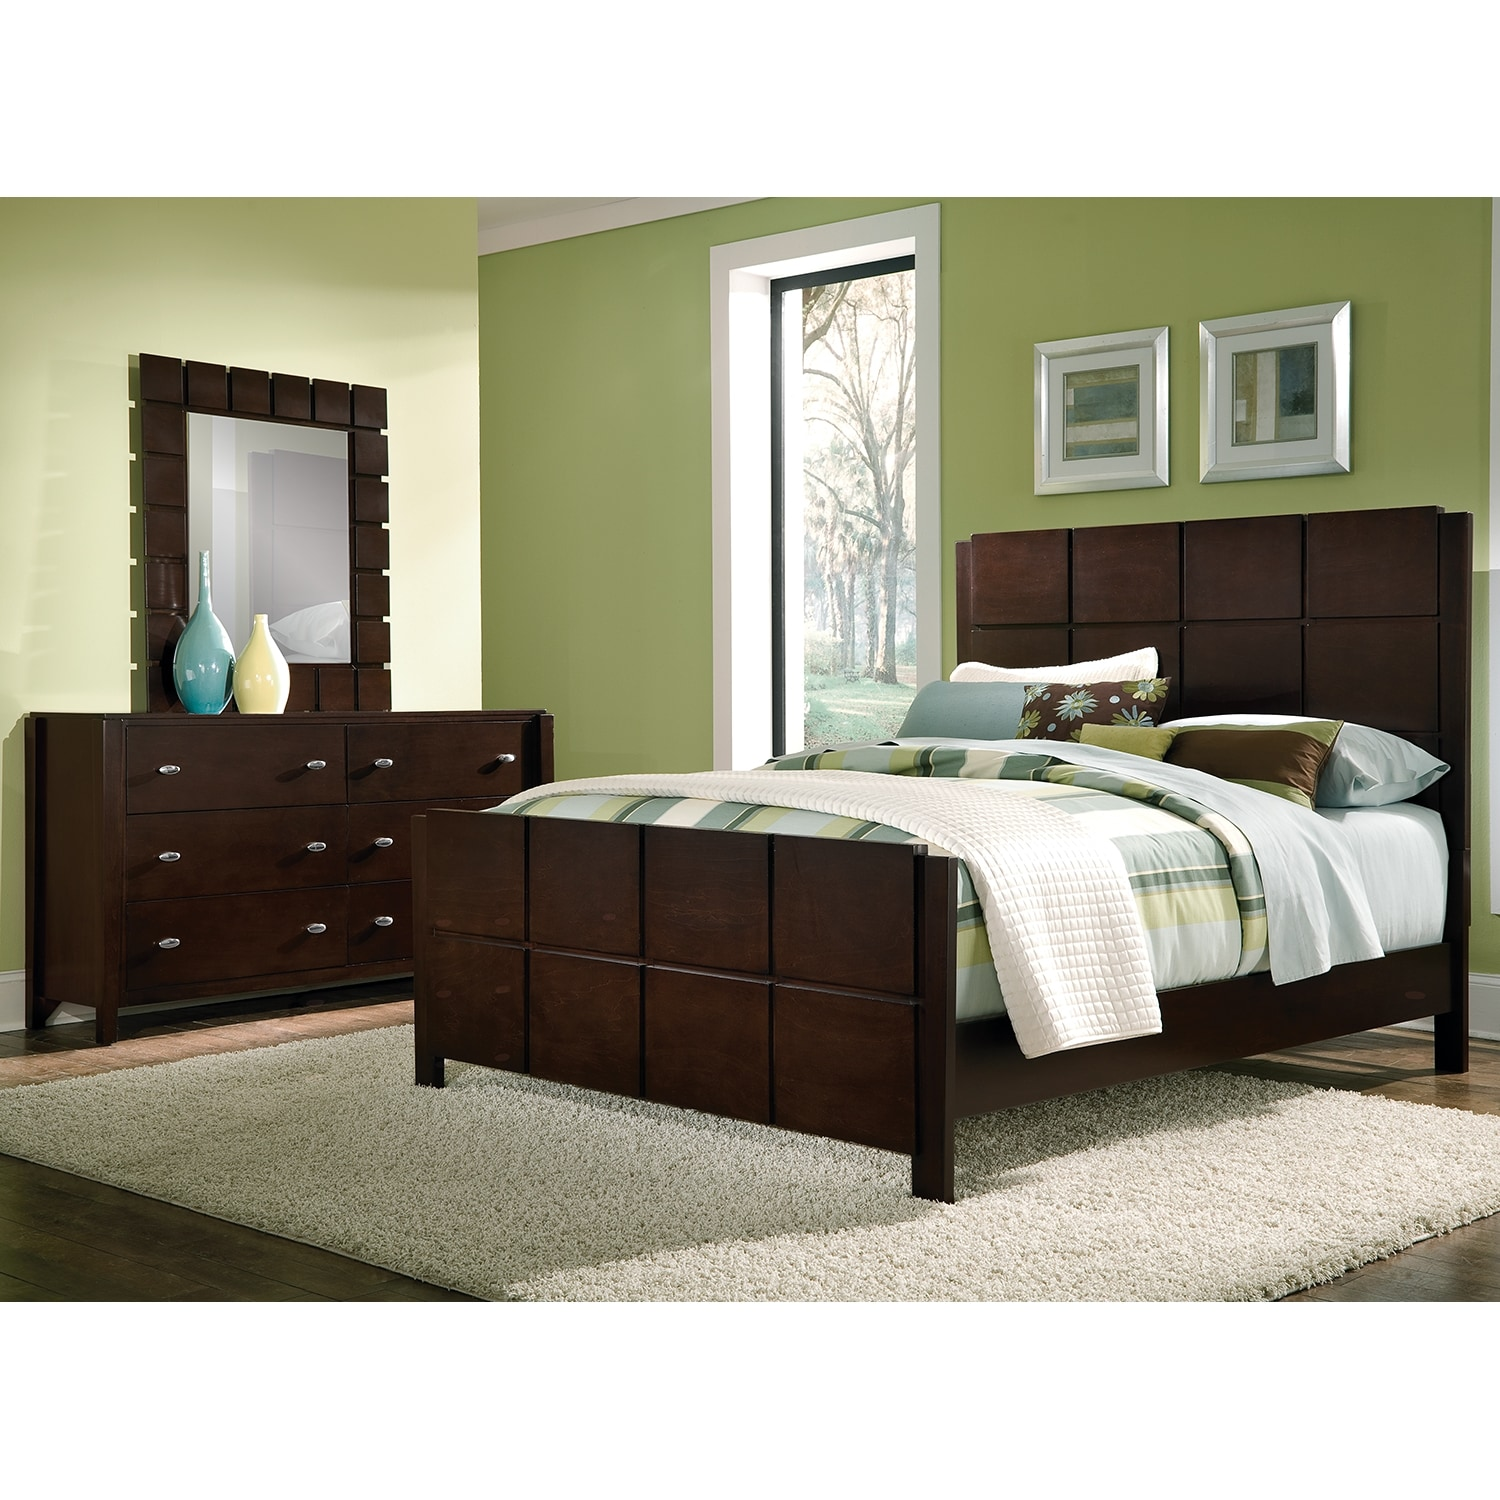 Mosaic 5 piece king bedroom set dark brown american for King bedroom sets